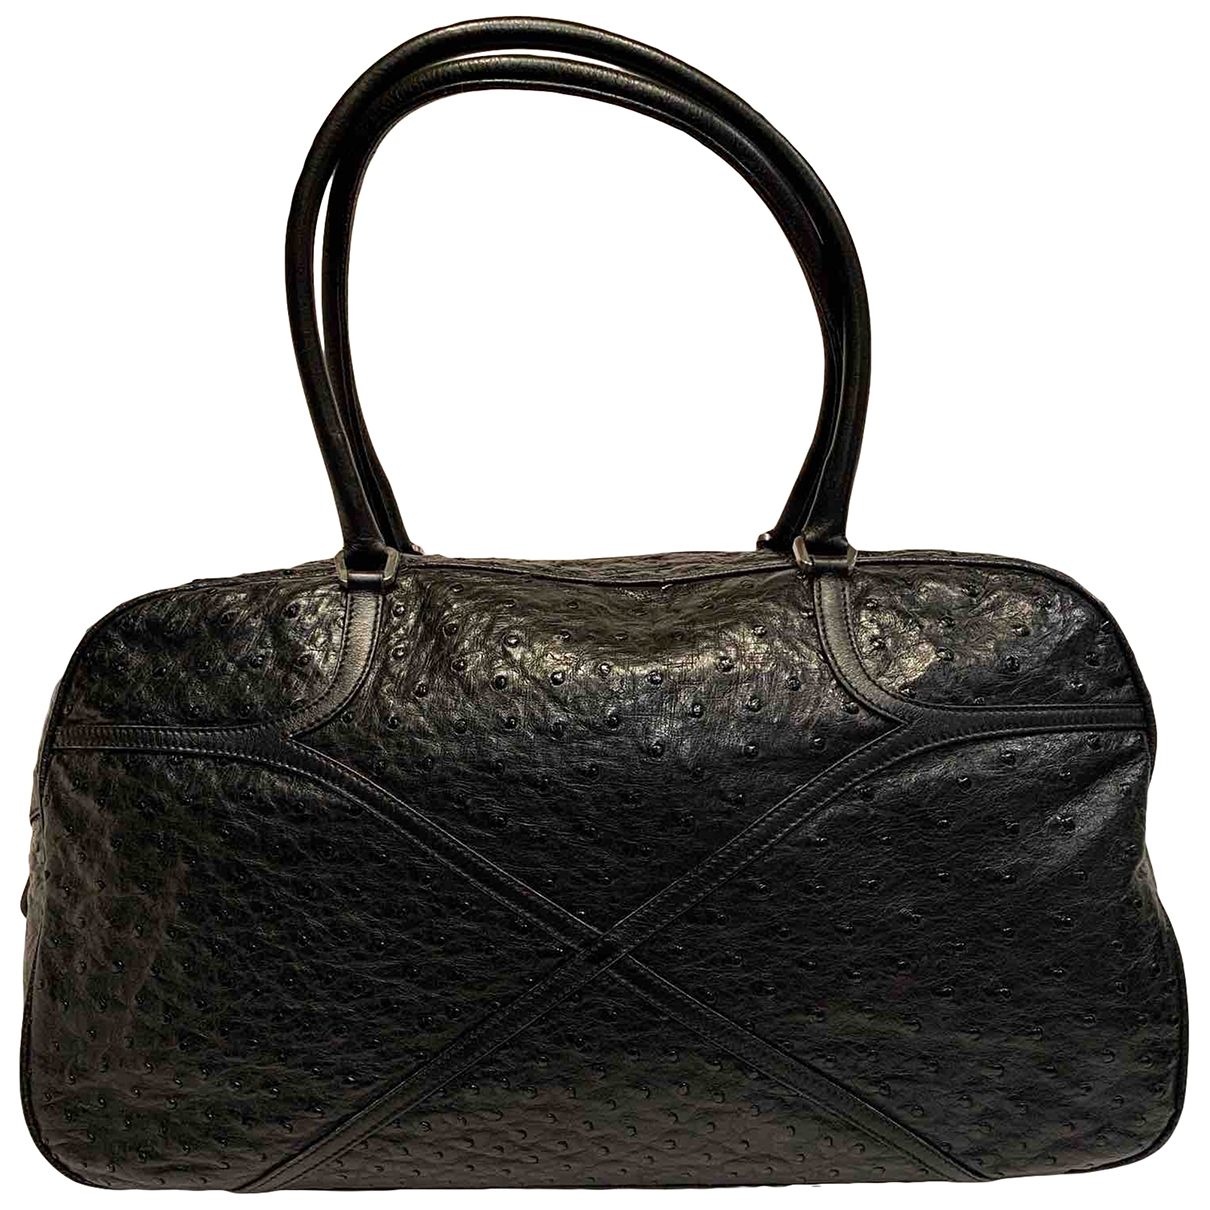 Prada \N Black Ostrich handbag for Women \N